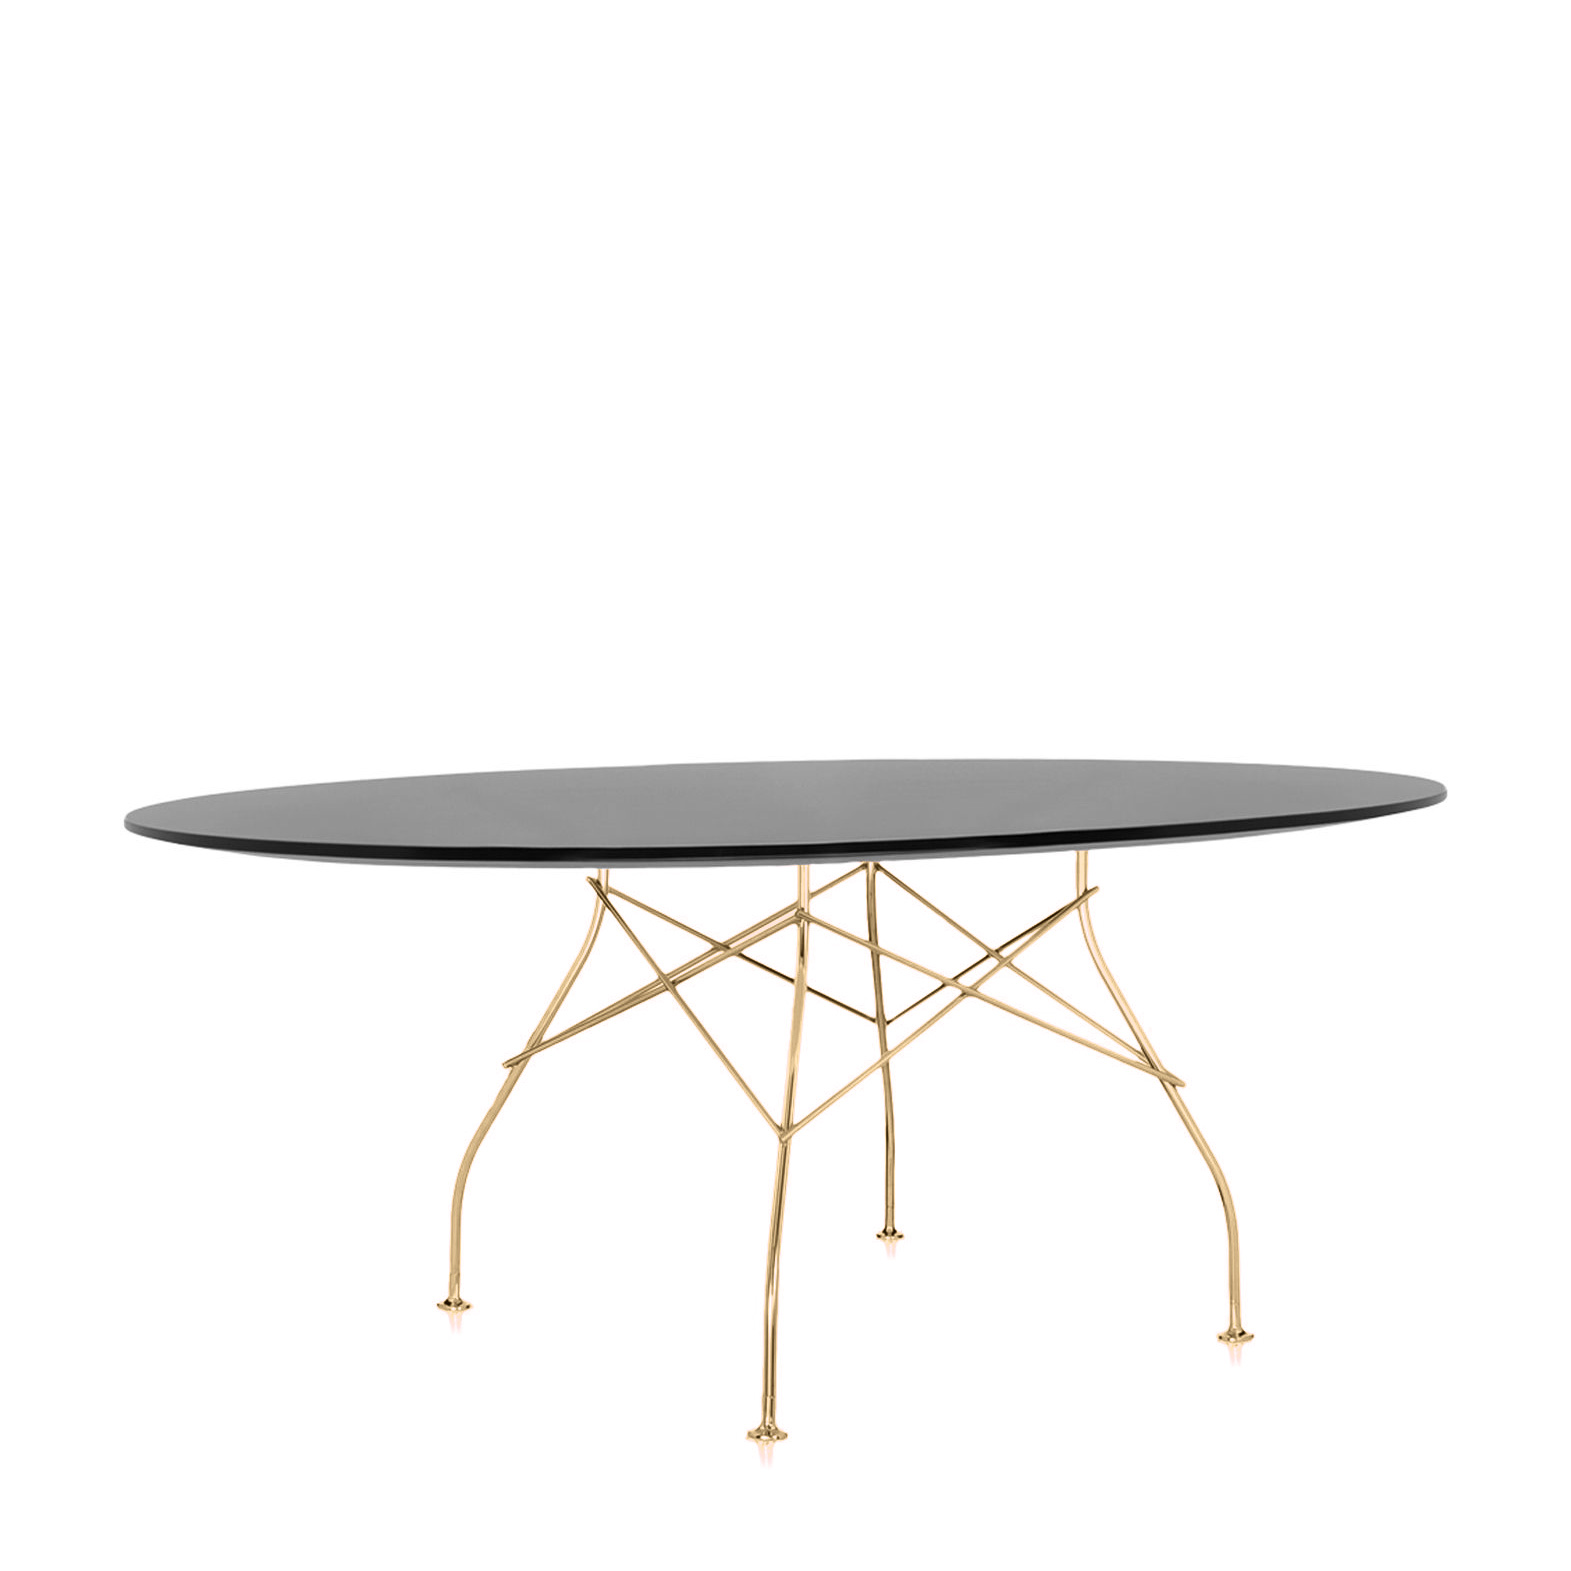 inspire clothlovely oval improvement winston your idea timeless in cover with decor as glass large lovely hayneedle table obscure dining patio to gardman home set top